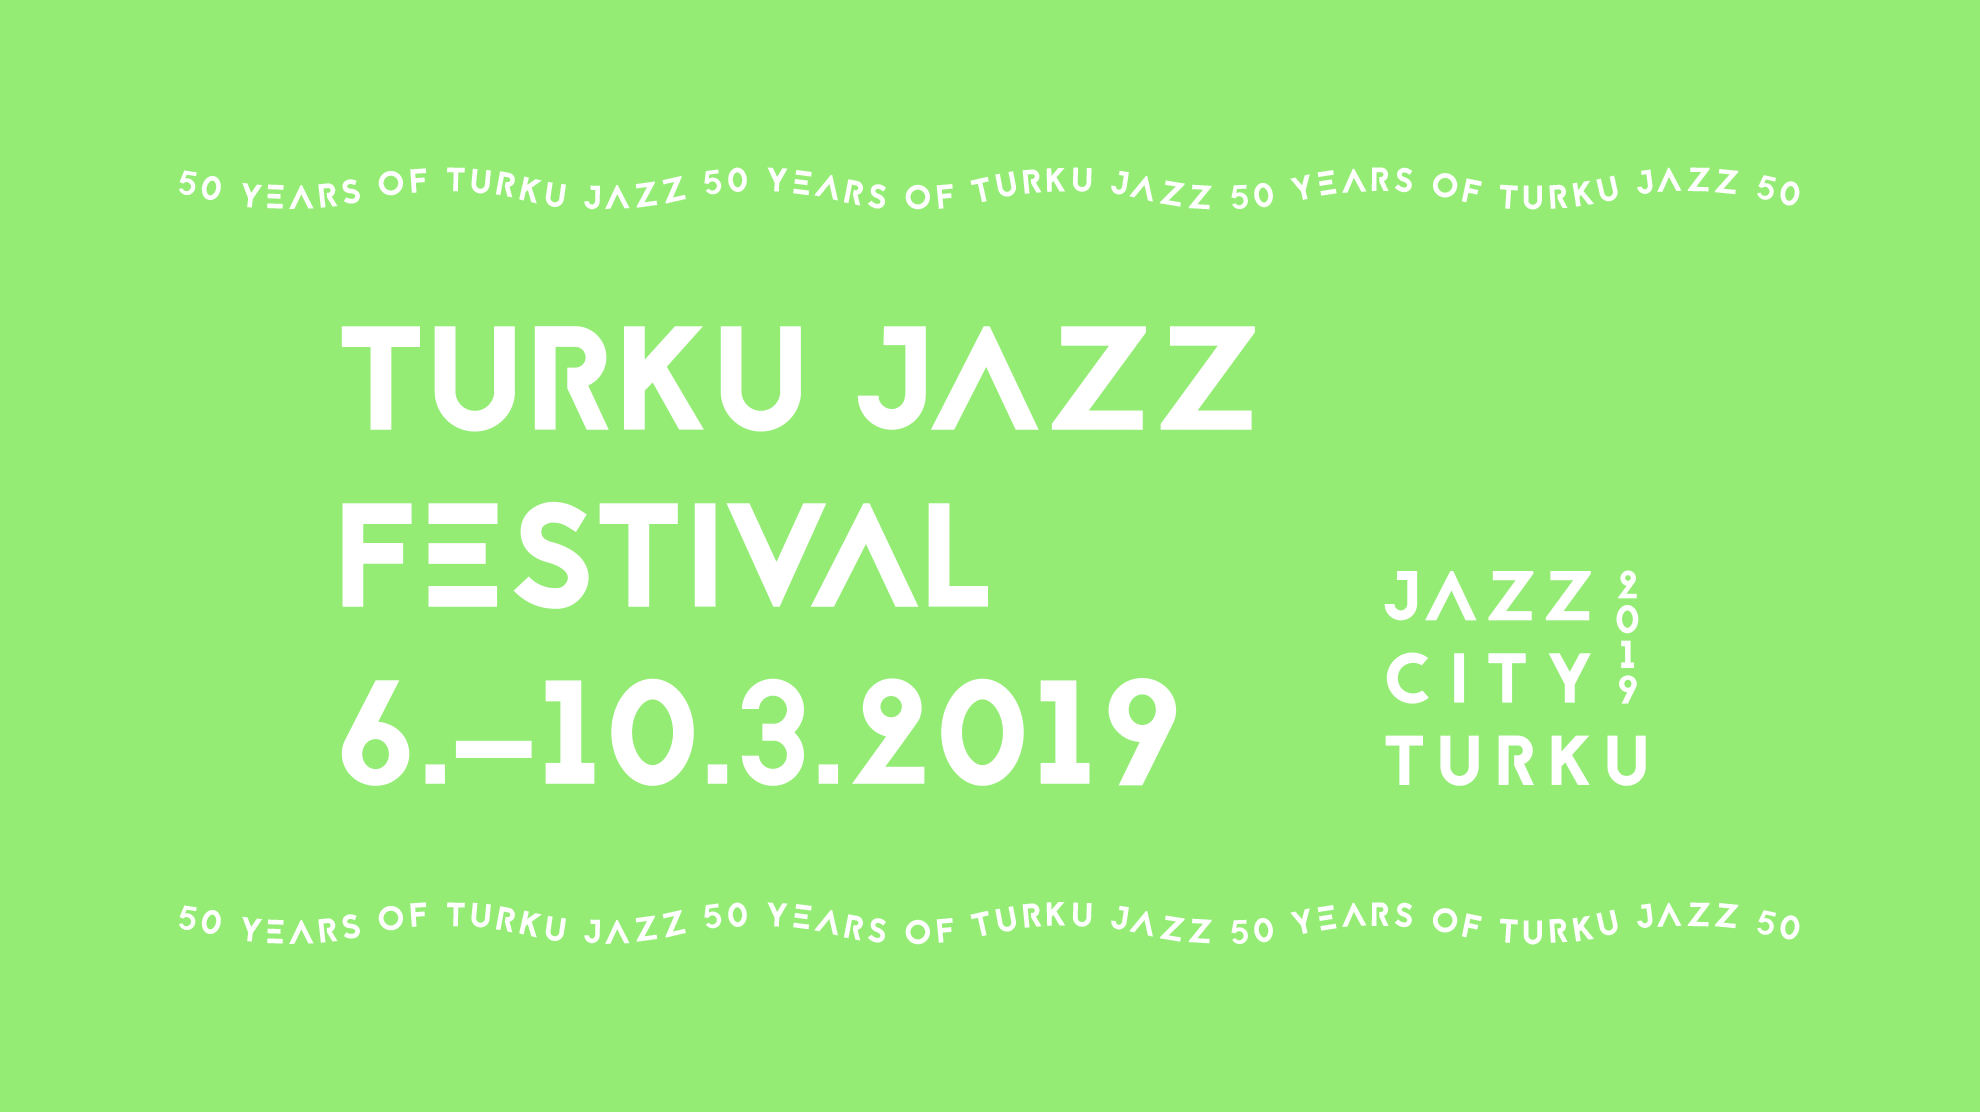 turkujazzfestival-2019-facebook-post-03